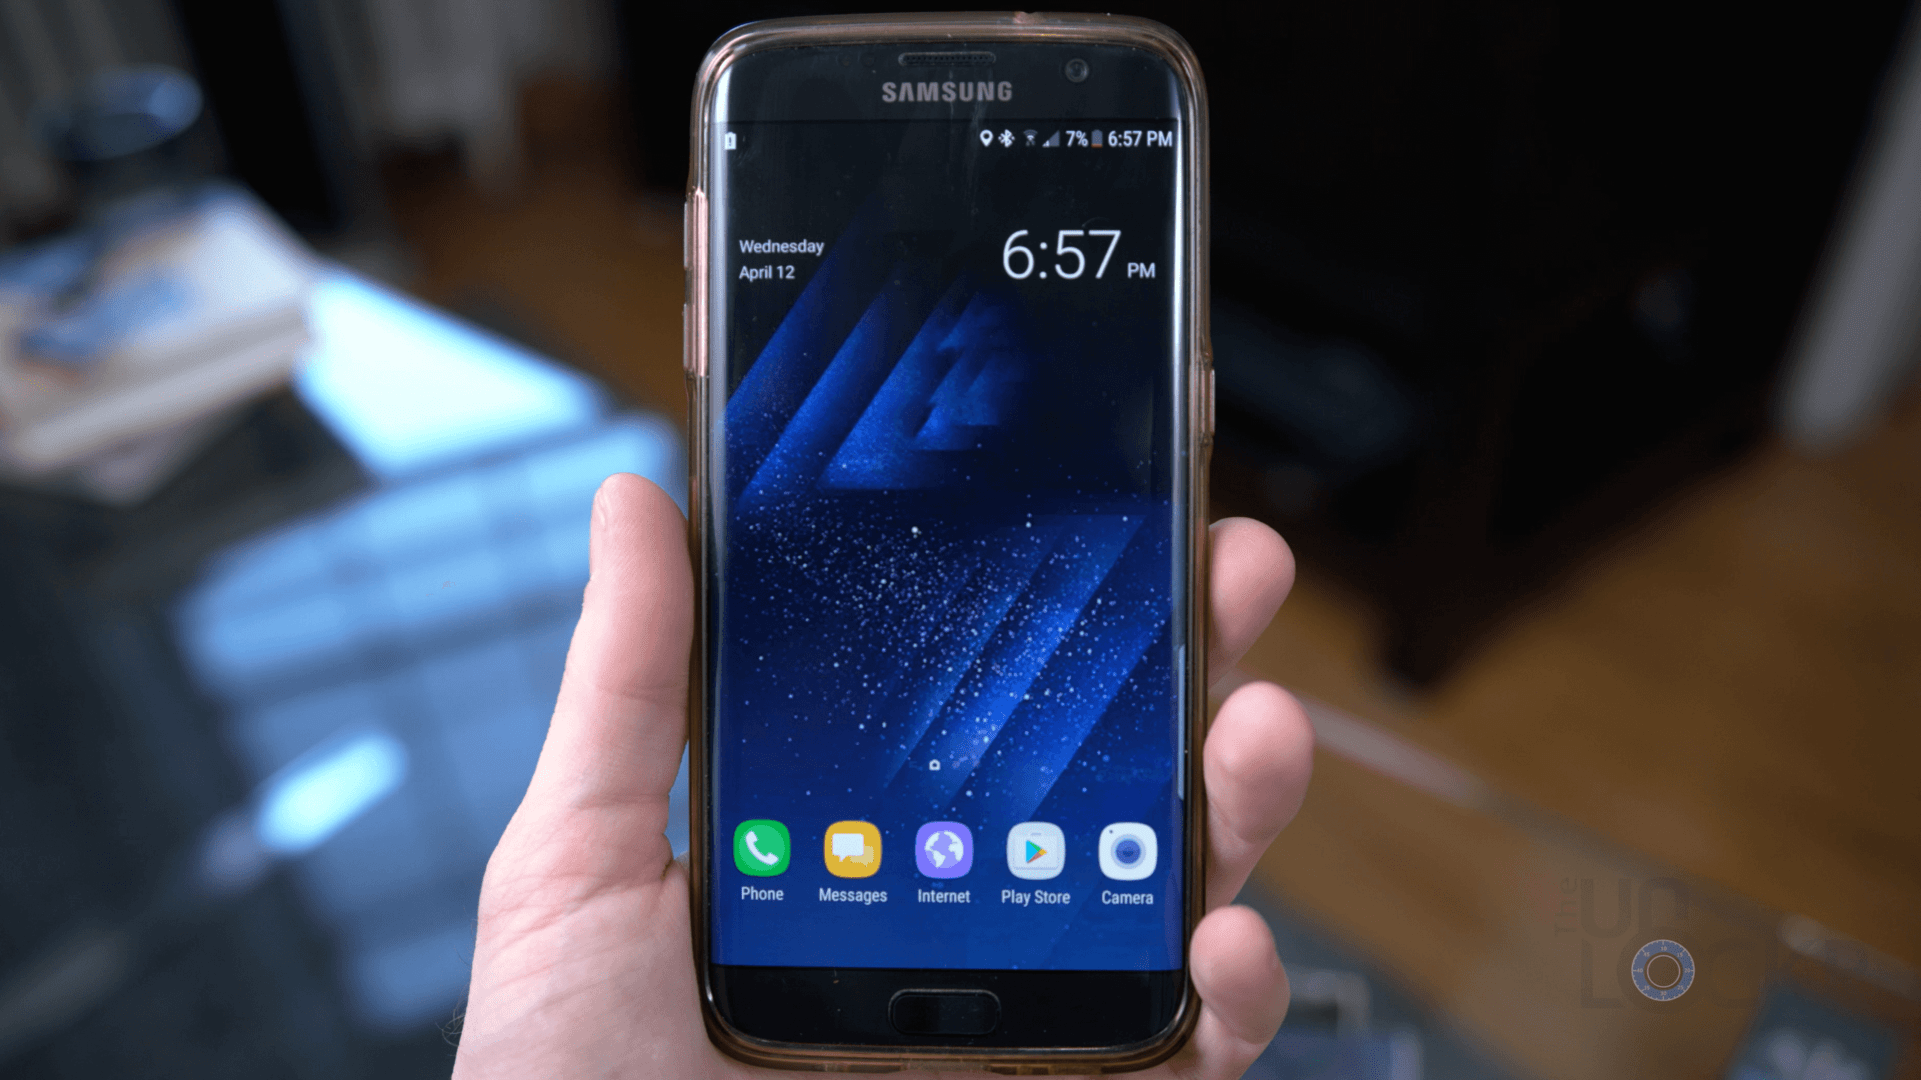 How to Get the Galaxy S8 Launcher, Bixby & Always-On Display on the